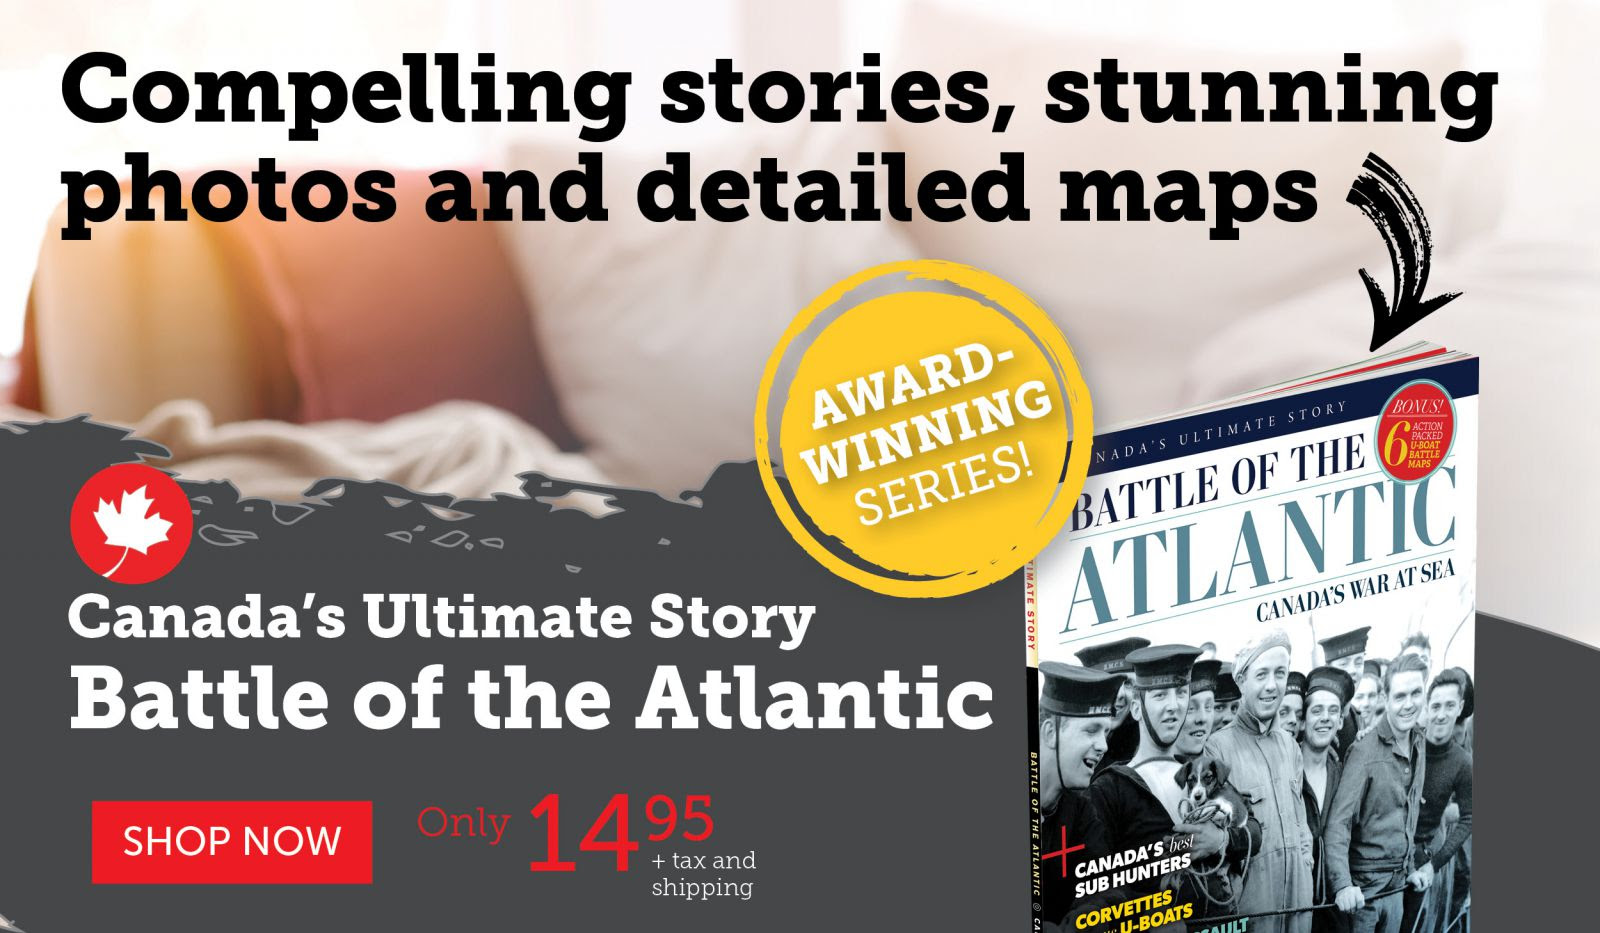 Battle of the Atlantic only $14.95!